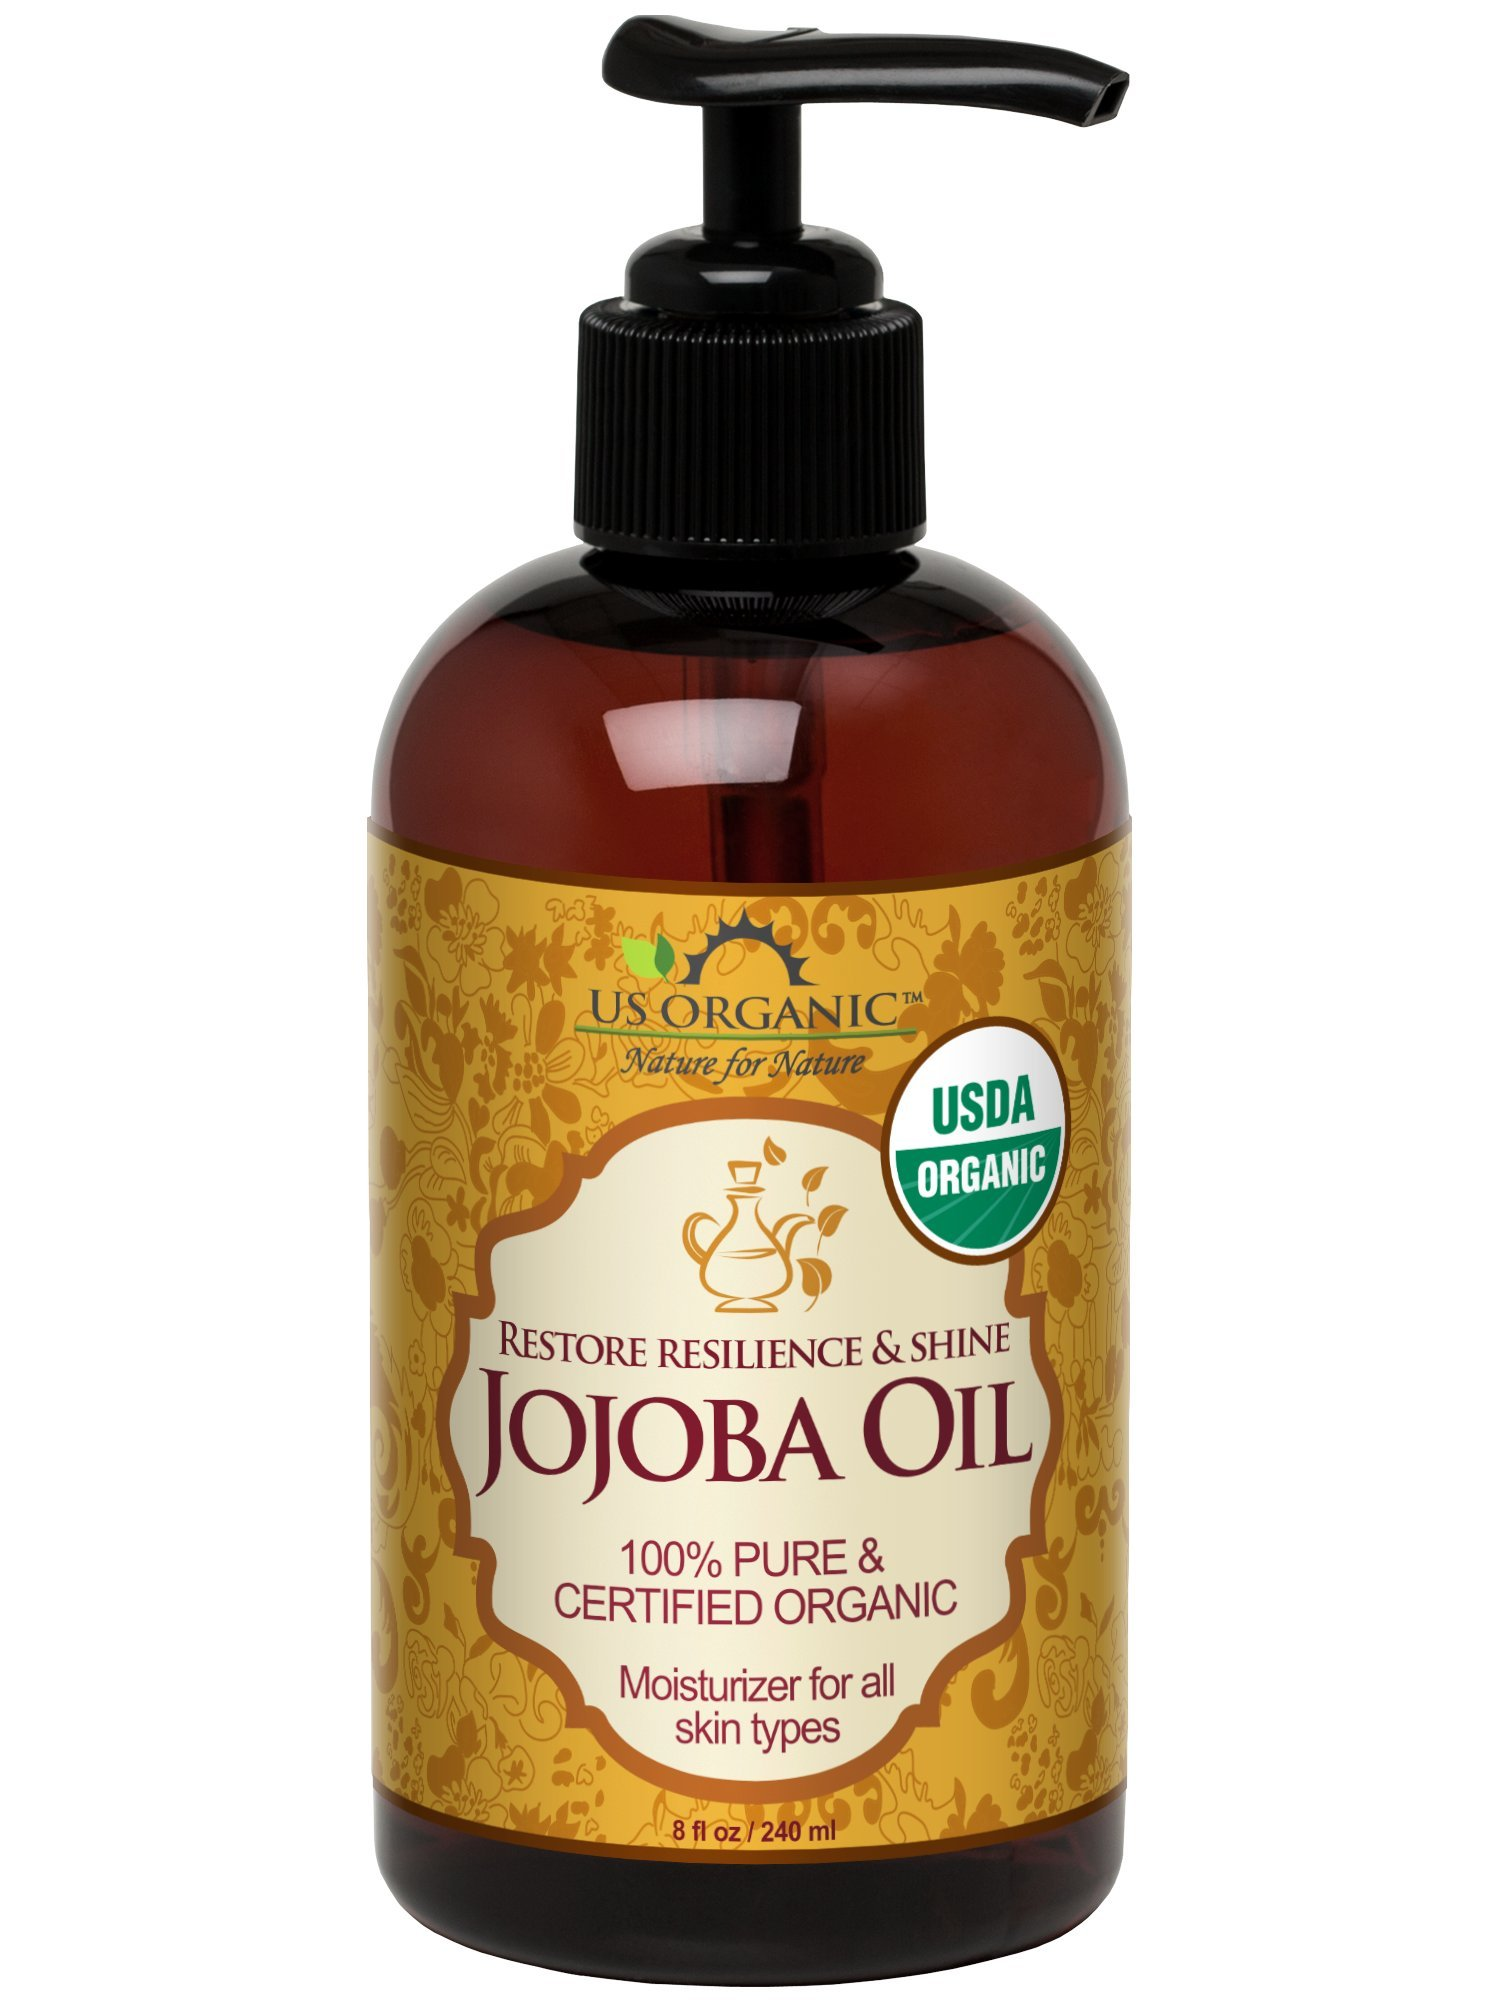 US Organic Jojoba Oil, USDA Certified Organic,100% Pure & Natural, Cold Pressed Virgin, Unrefined, Haxane Free, 8 Ounce in Amber Plastic Bottle with Pump for Easy Application